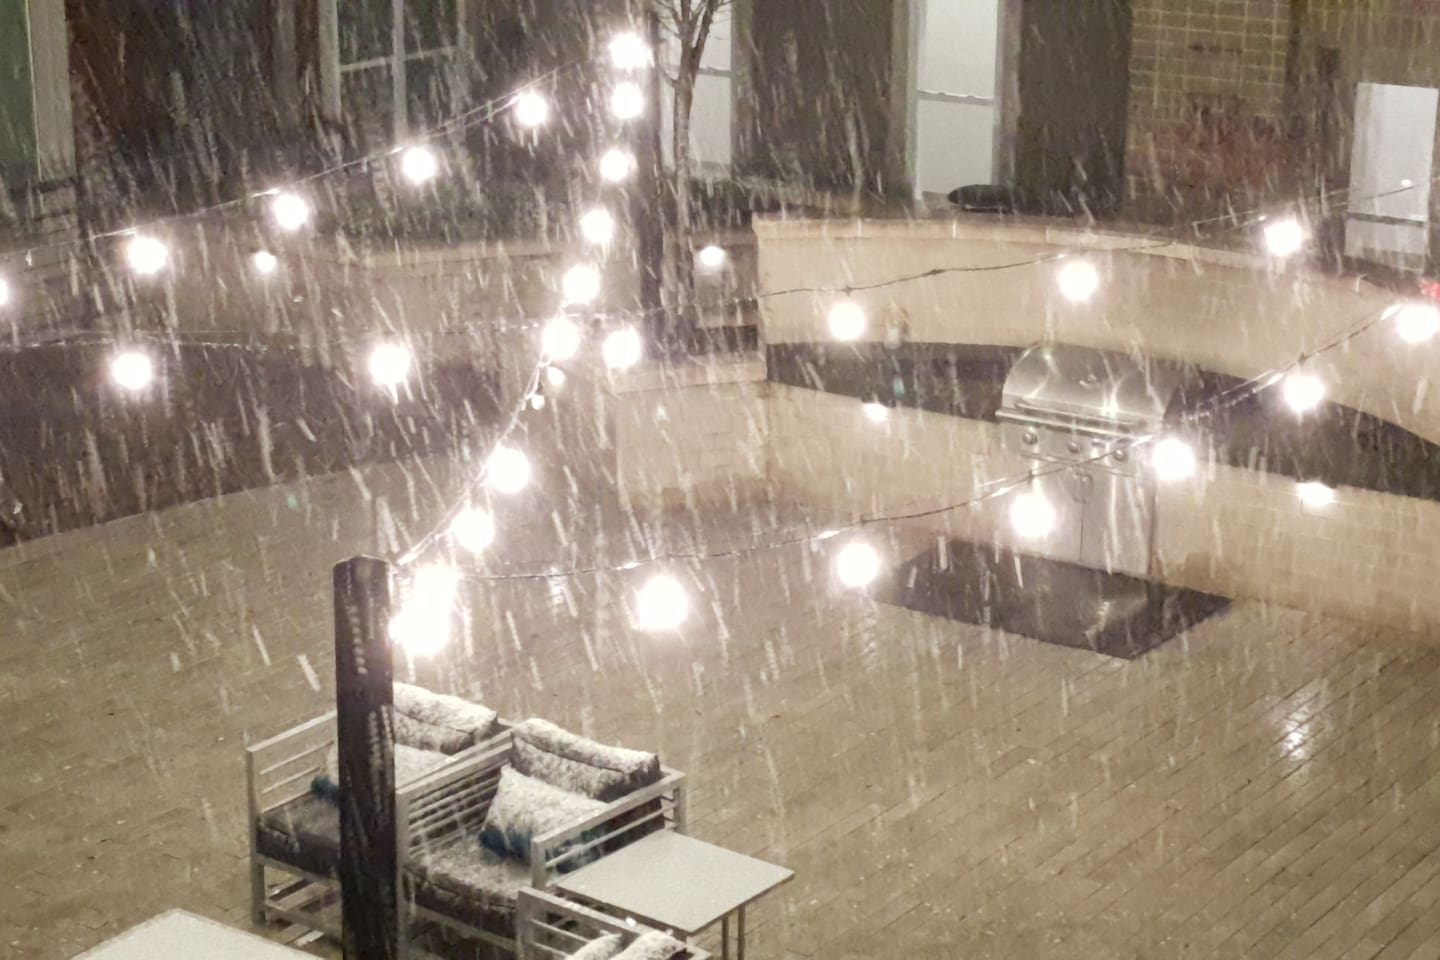 The courtyard in the snow